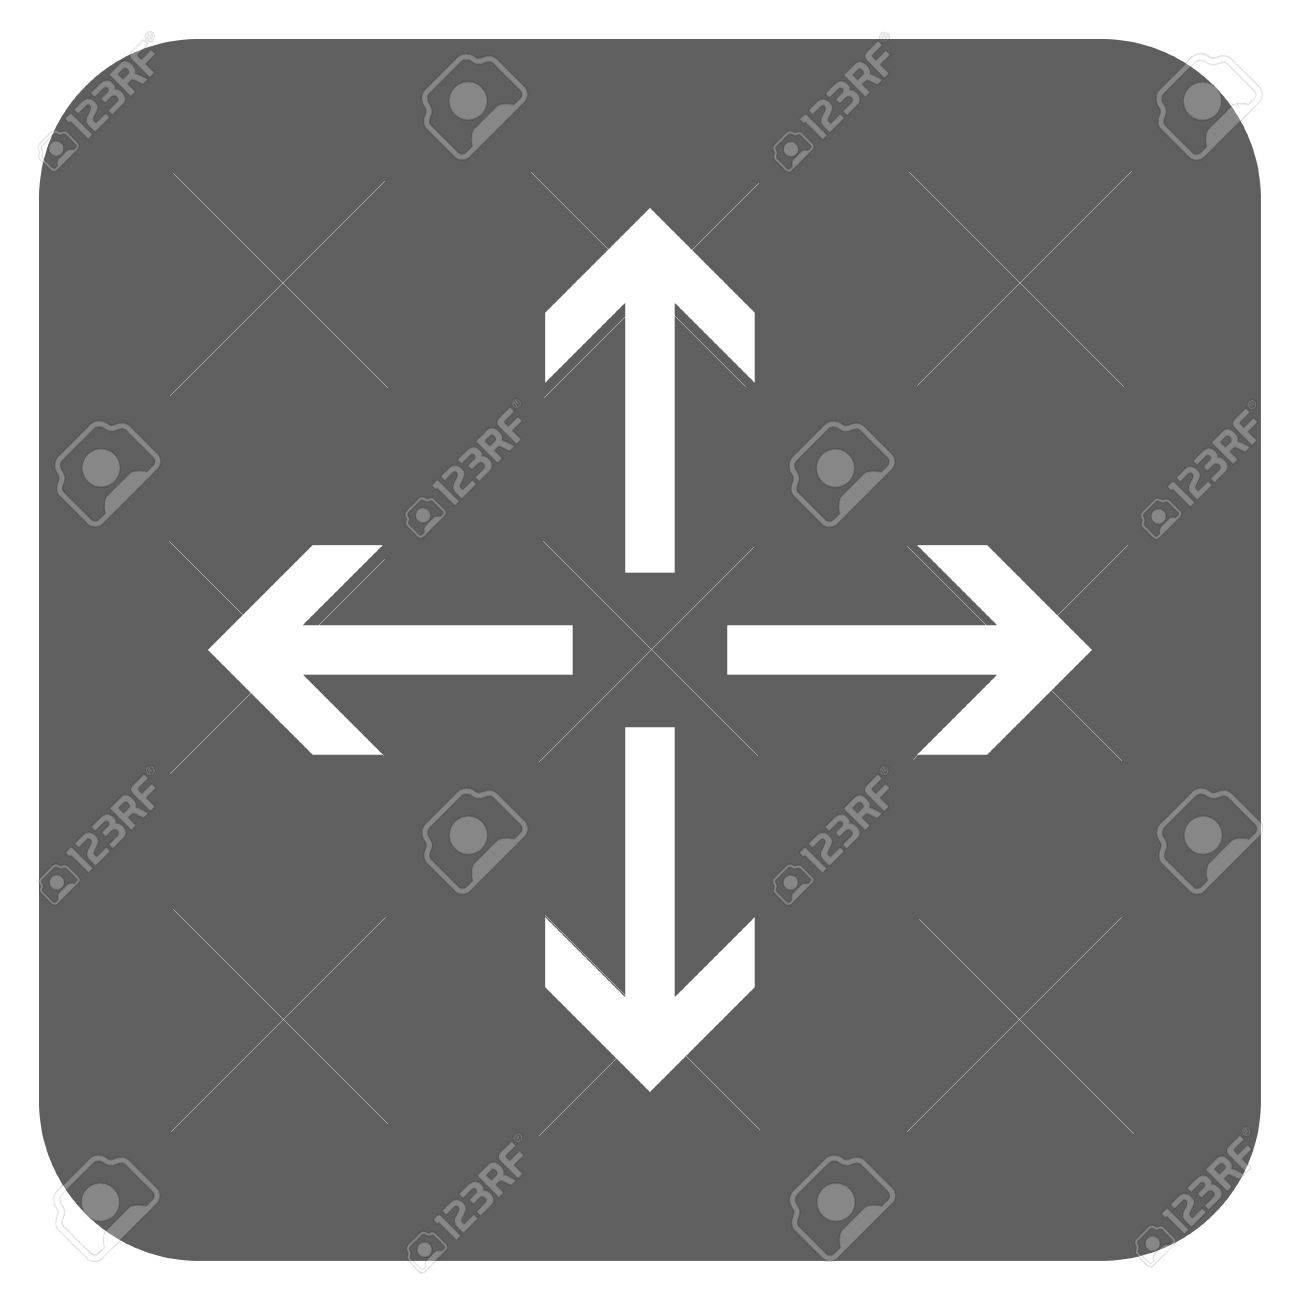 Expand Arrows vector icon  Image style is a flat icon symbol